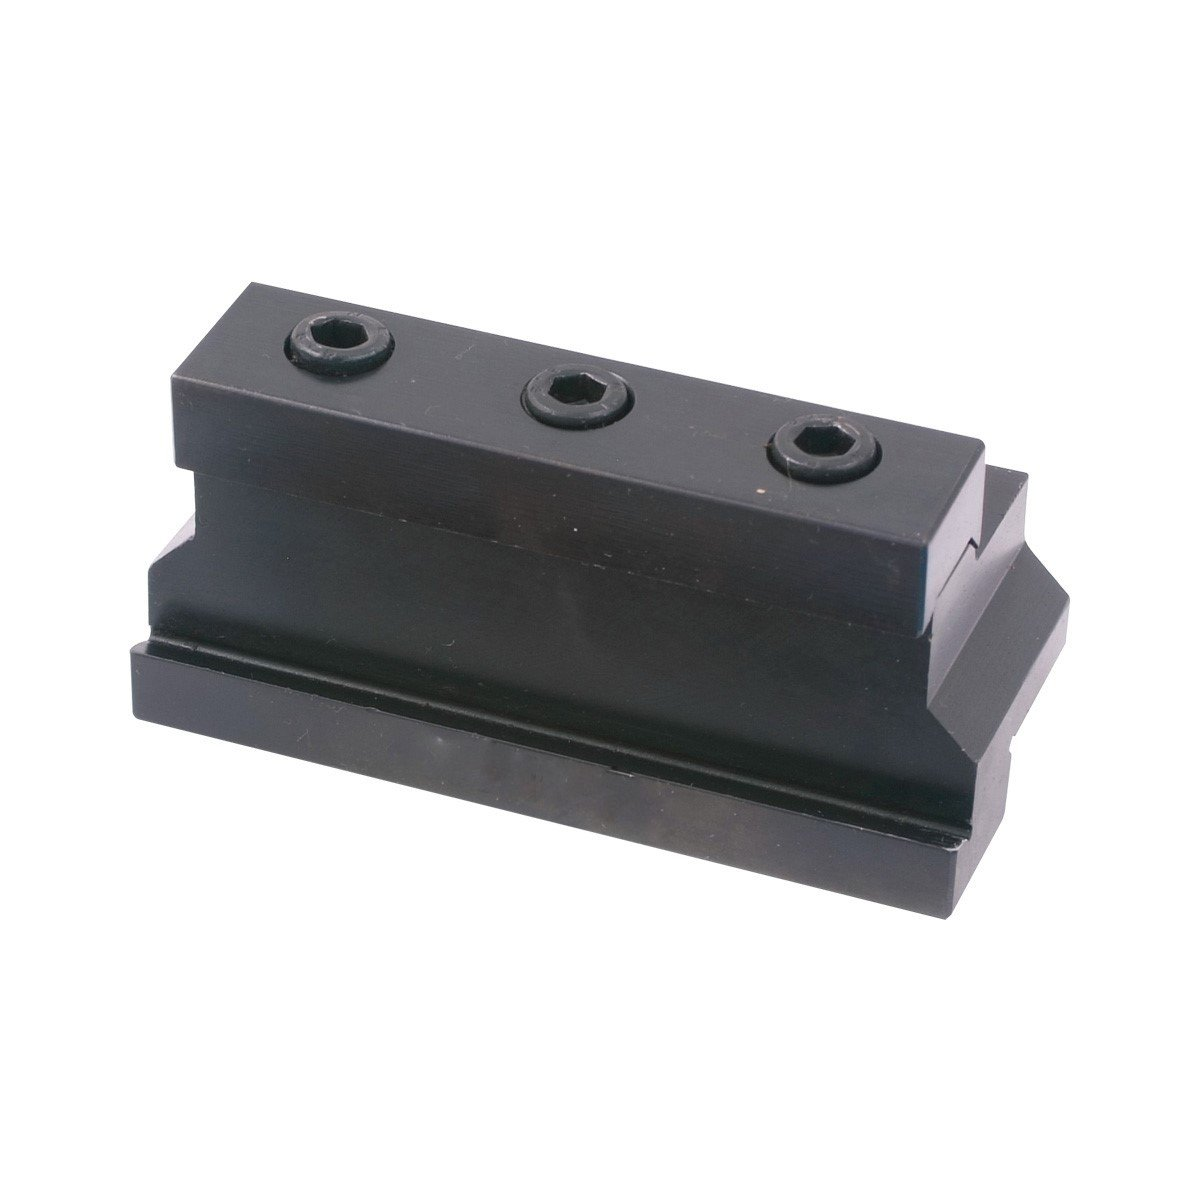 HHIP 3900-5352 Carbide Indexable Cut Off Individual Tool Block, 3.95'' Length x 1.5'' Width x 1.94'' Height